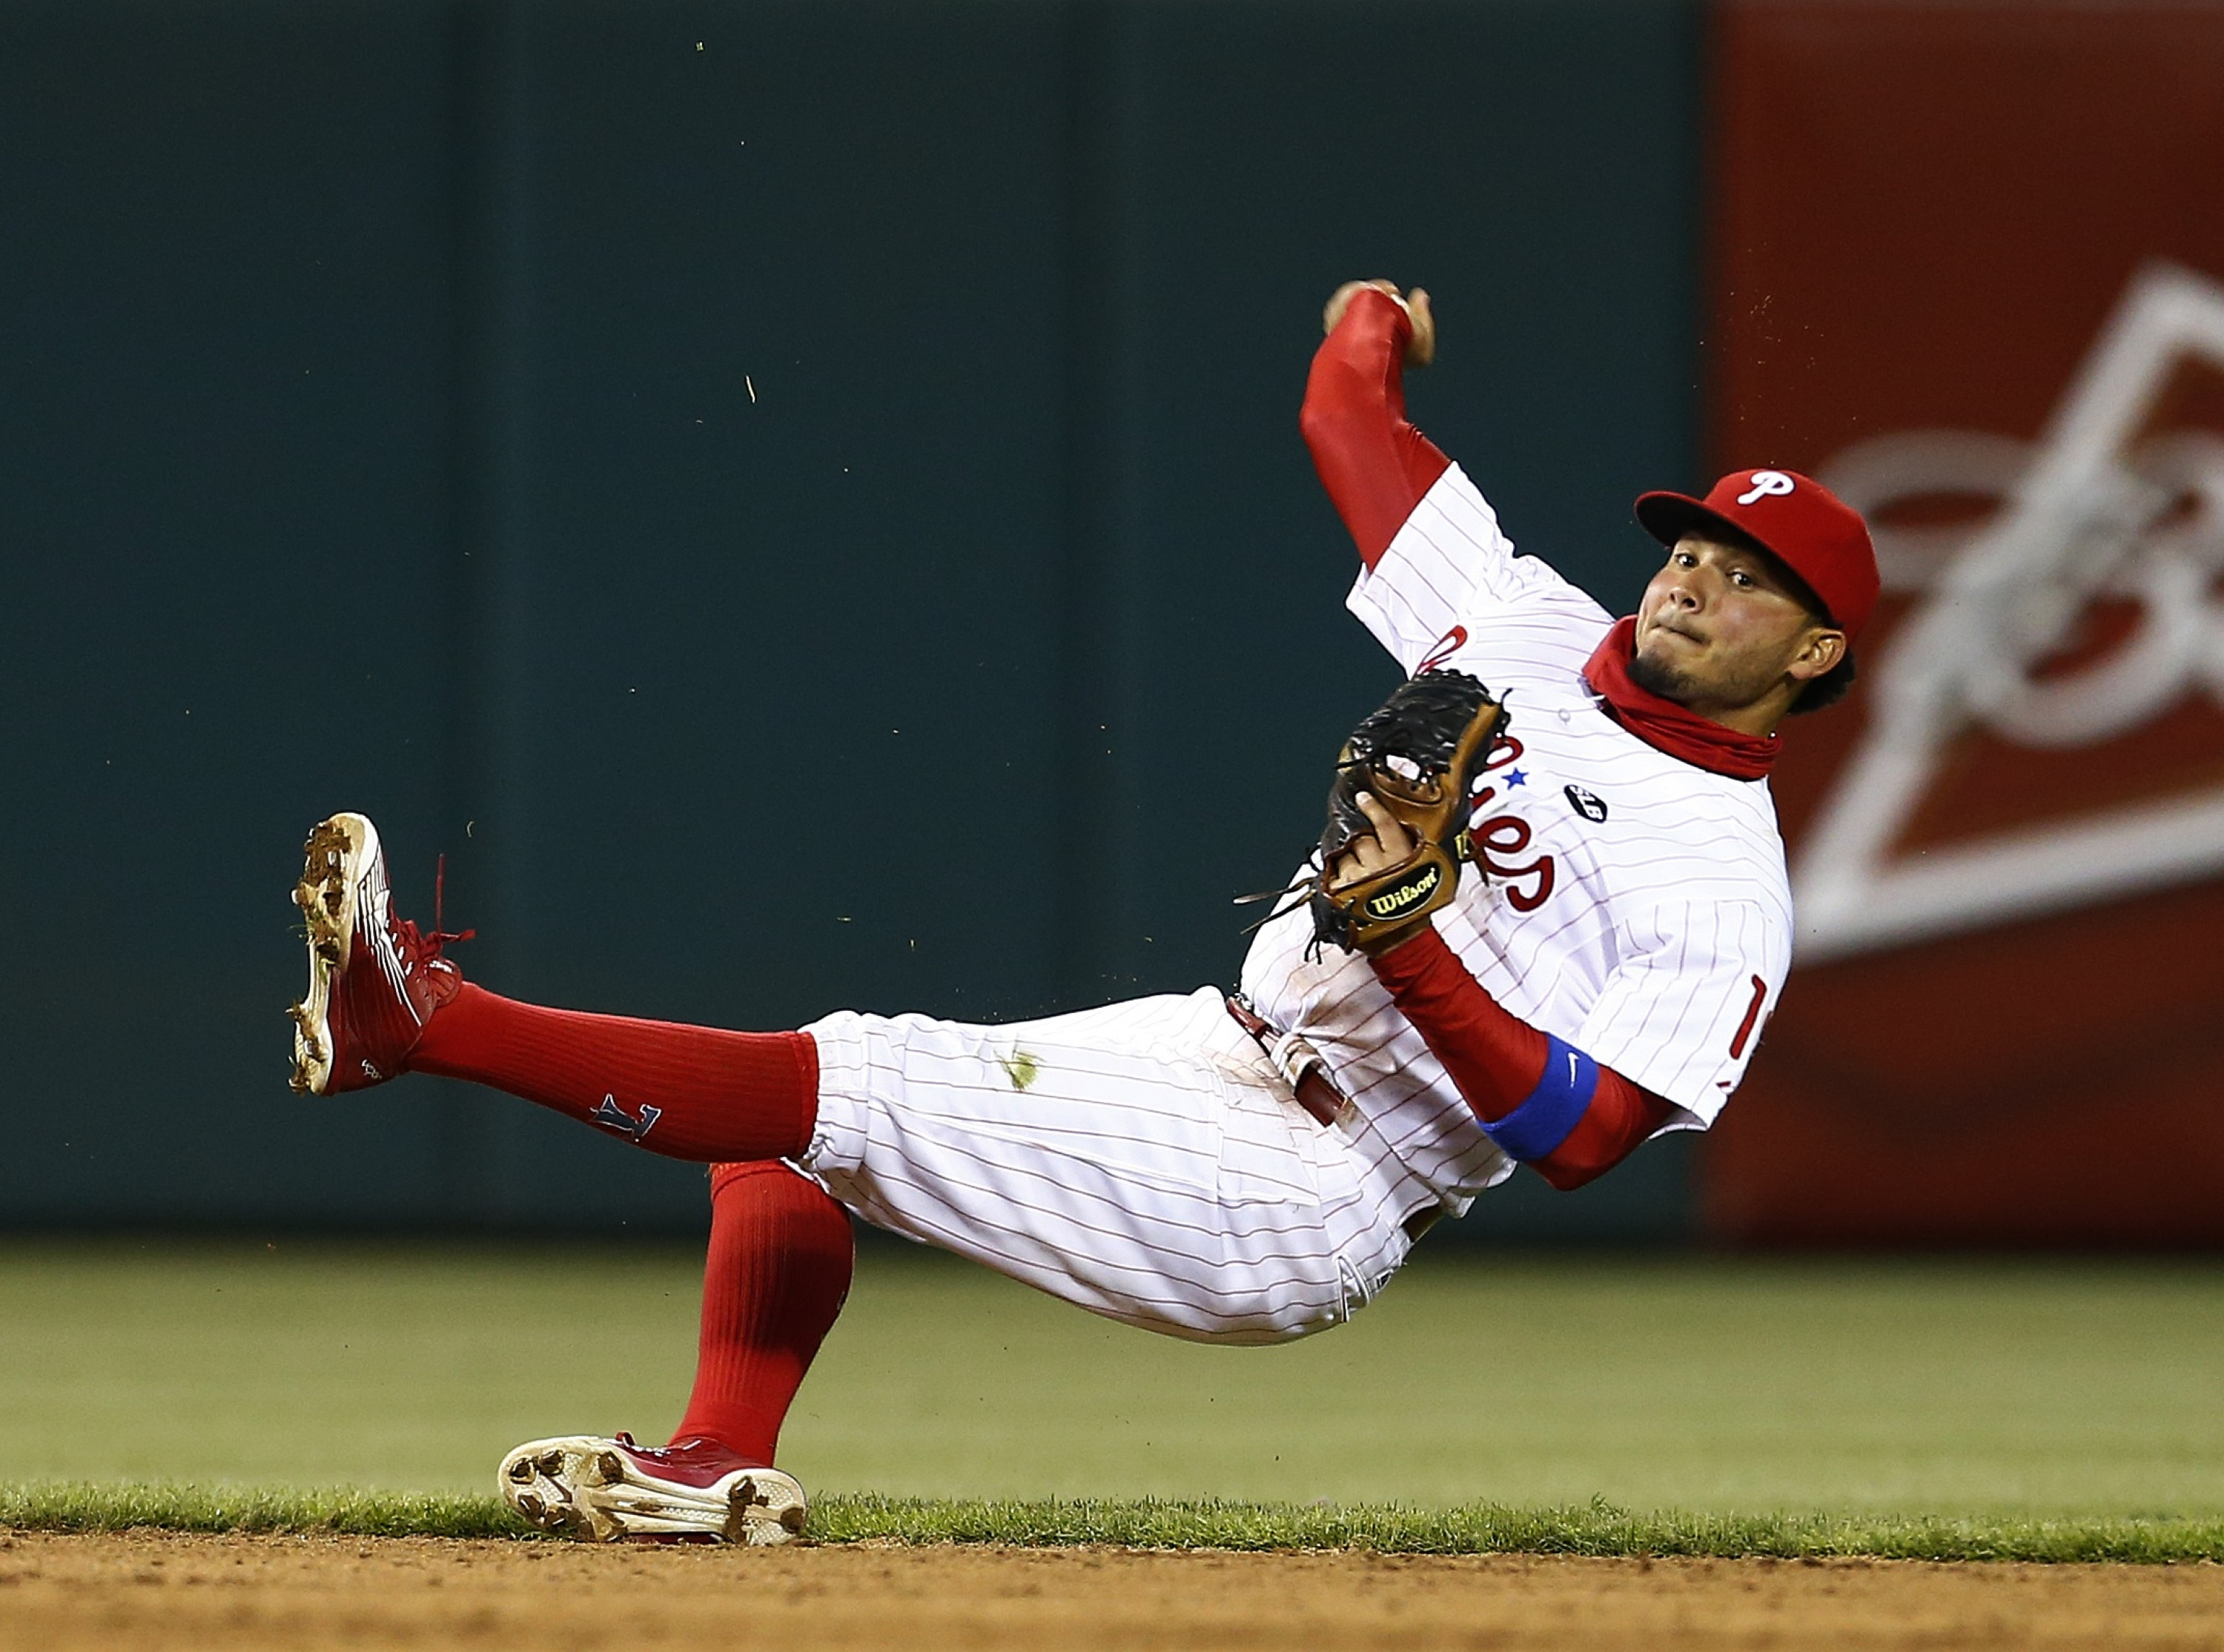 Freddy Galvis makes like Andrelton Simmons to rob Braves of hit